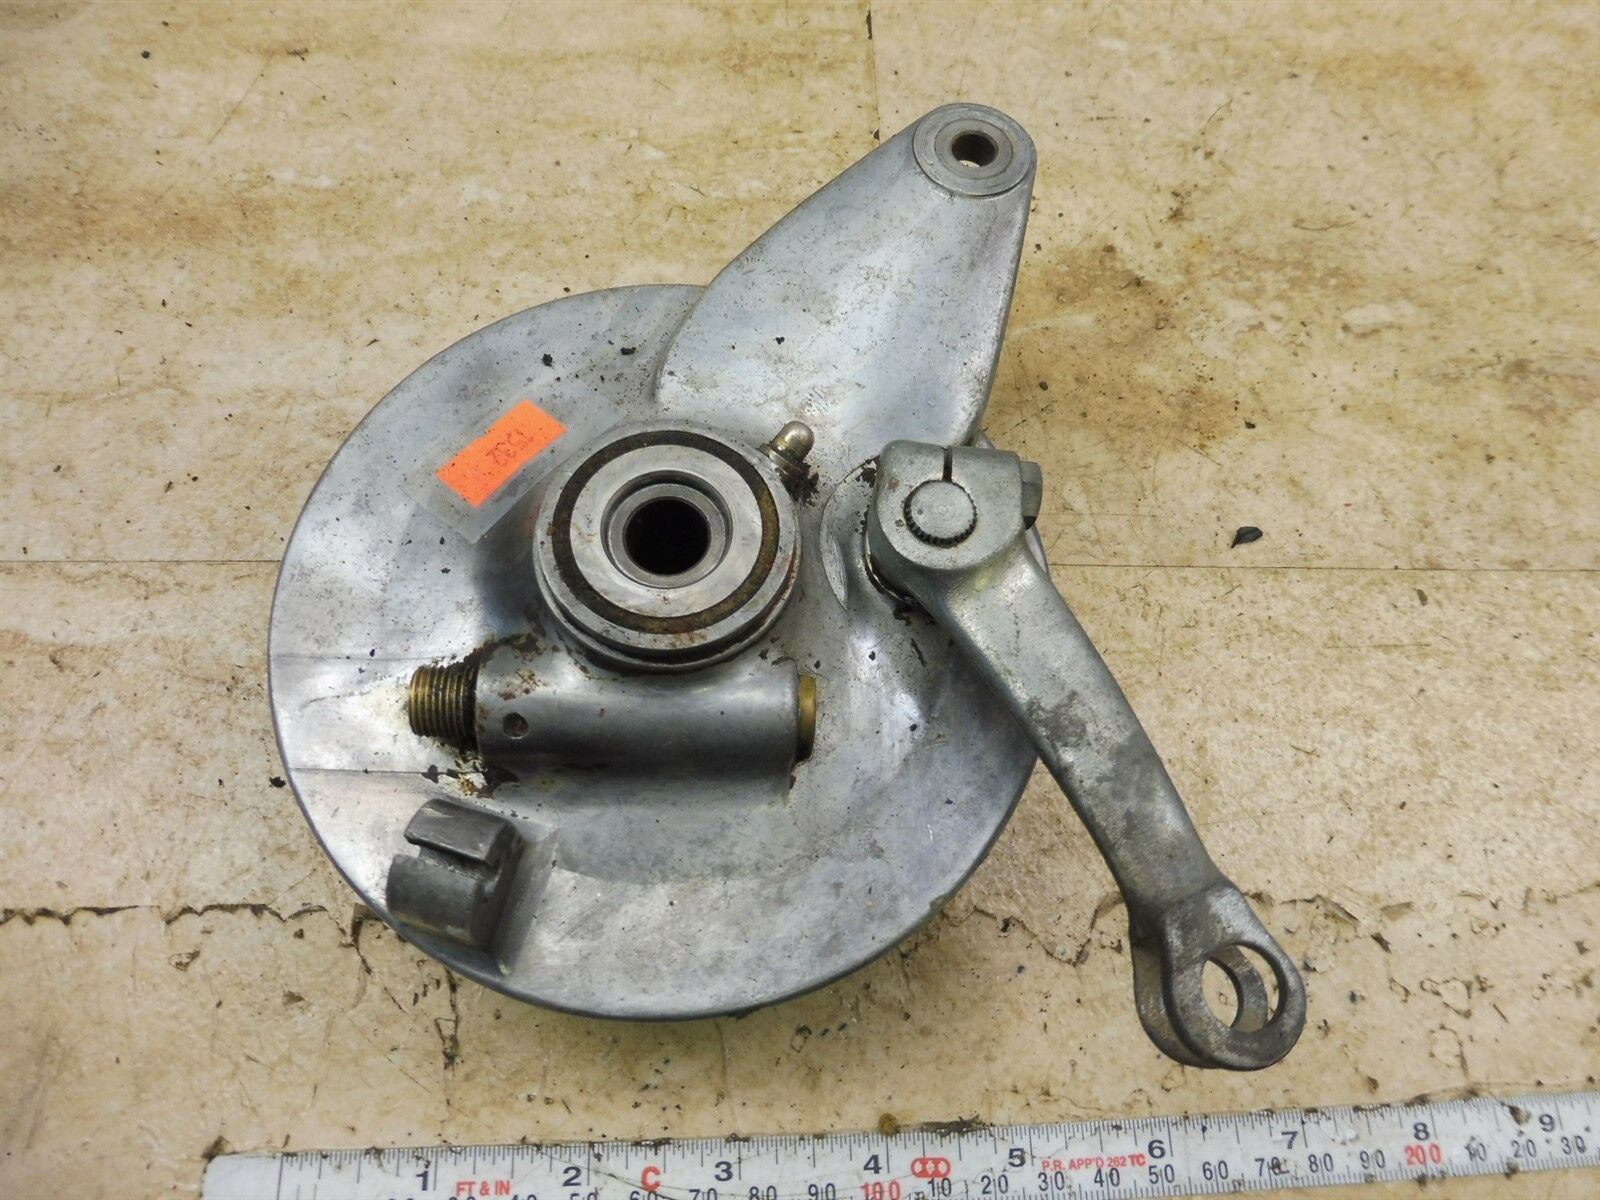 1967 Honda Ct90 Trail 90 K1 H1532 Front Brake Hub Shoe 3817 Fuel Filter 1 Of 9only Available